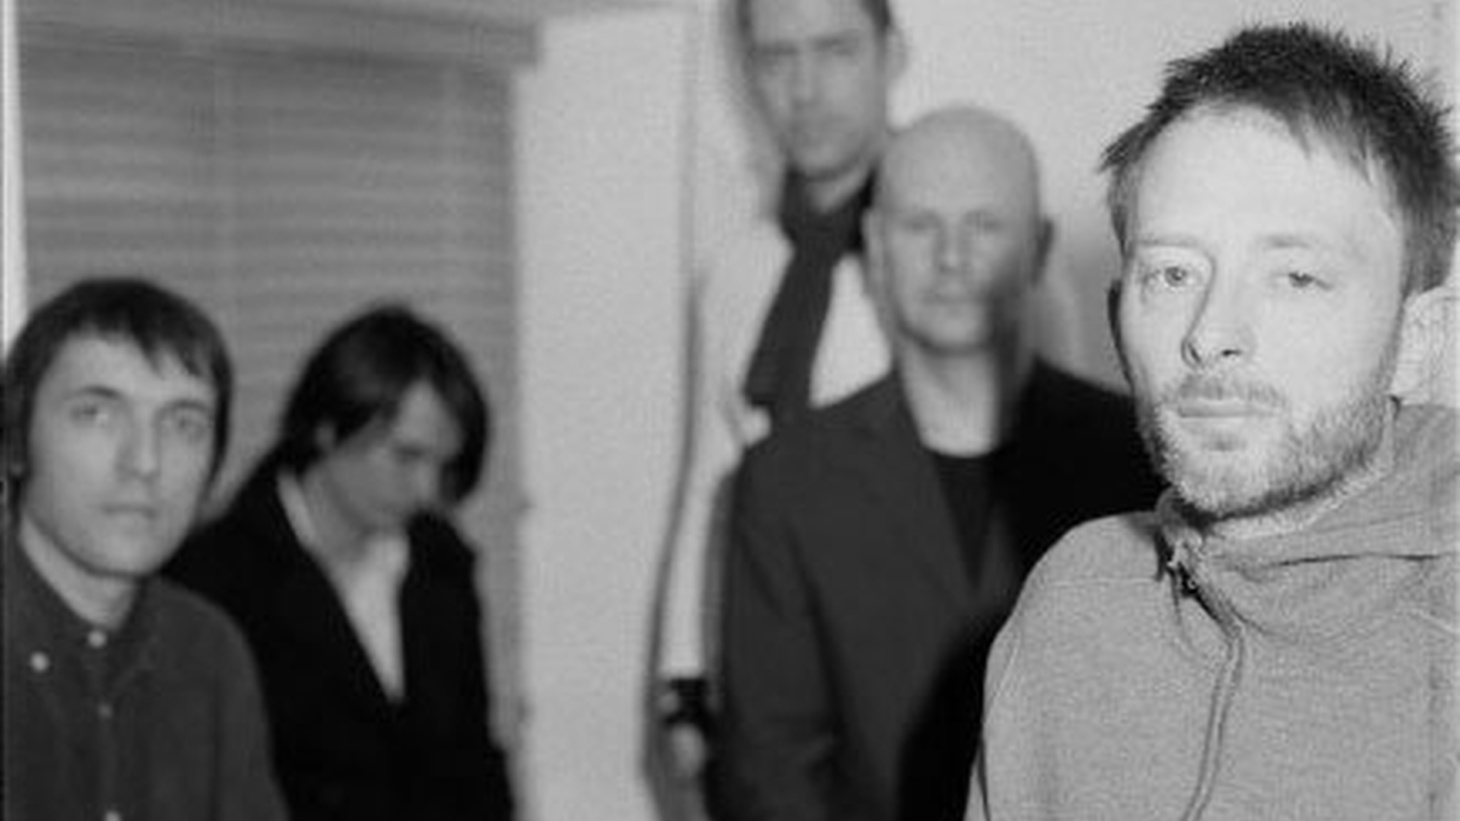 A month before OK Computer was released, Radiohead made their second visit to Morning Becomes Eclectic.